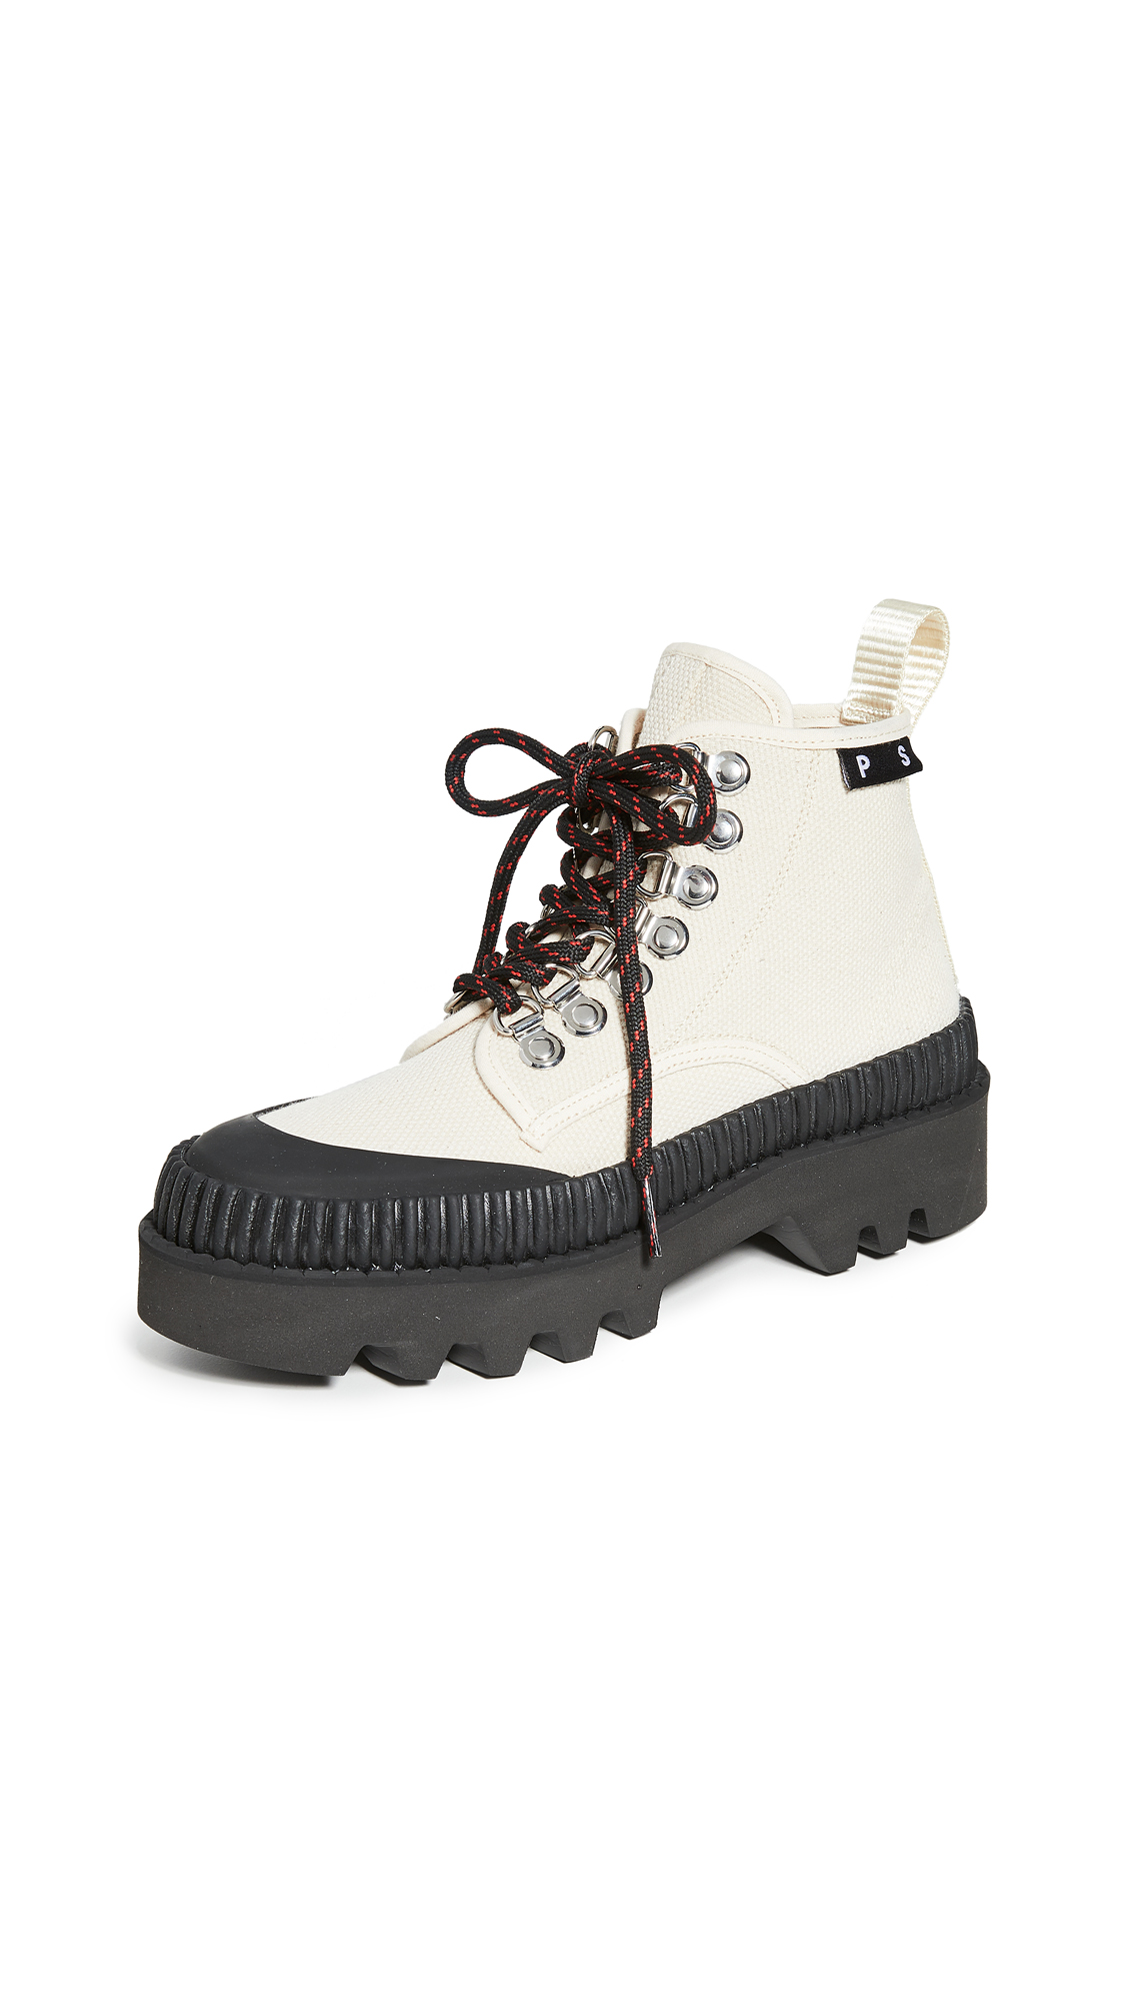 Proenza Schouler Lace Up Hiker Boots - 60% Off Sale